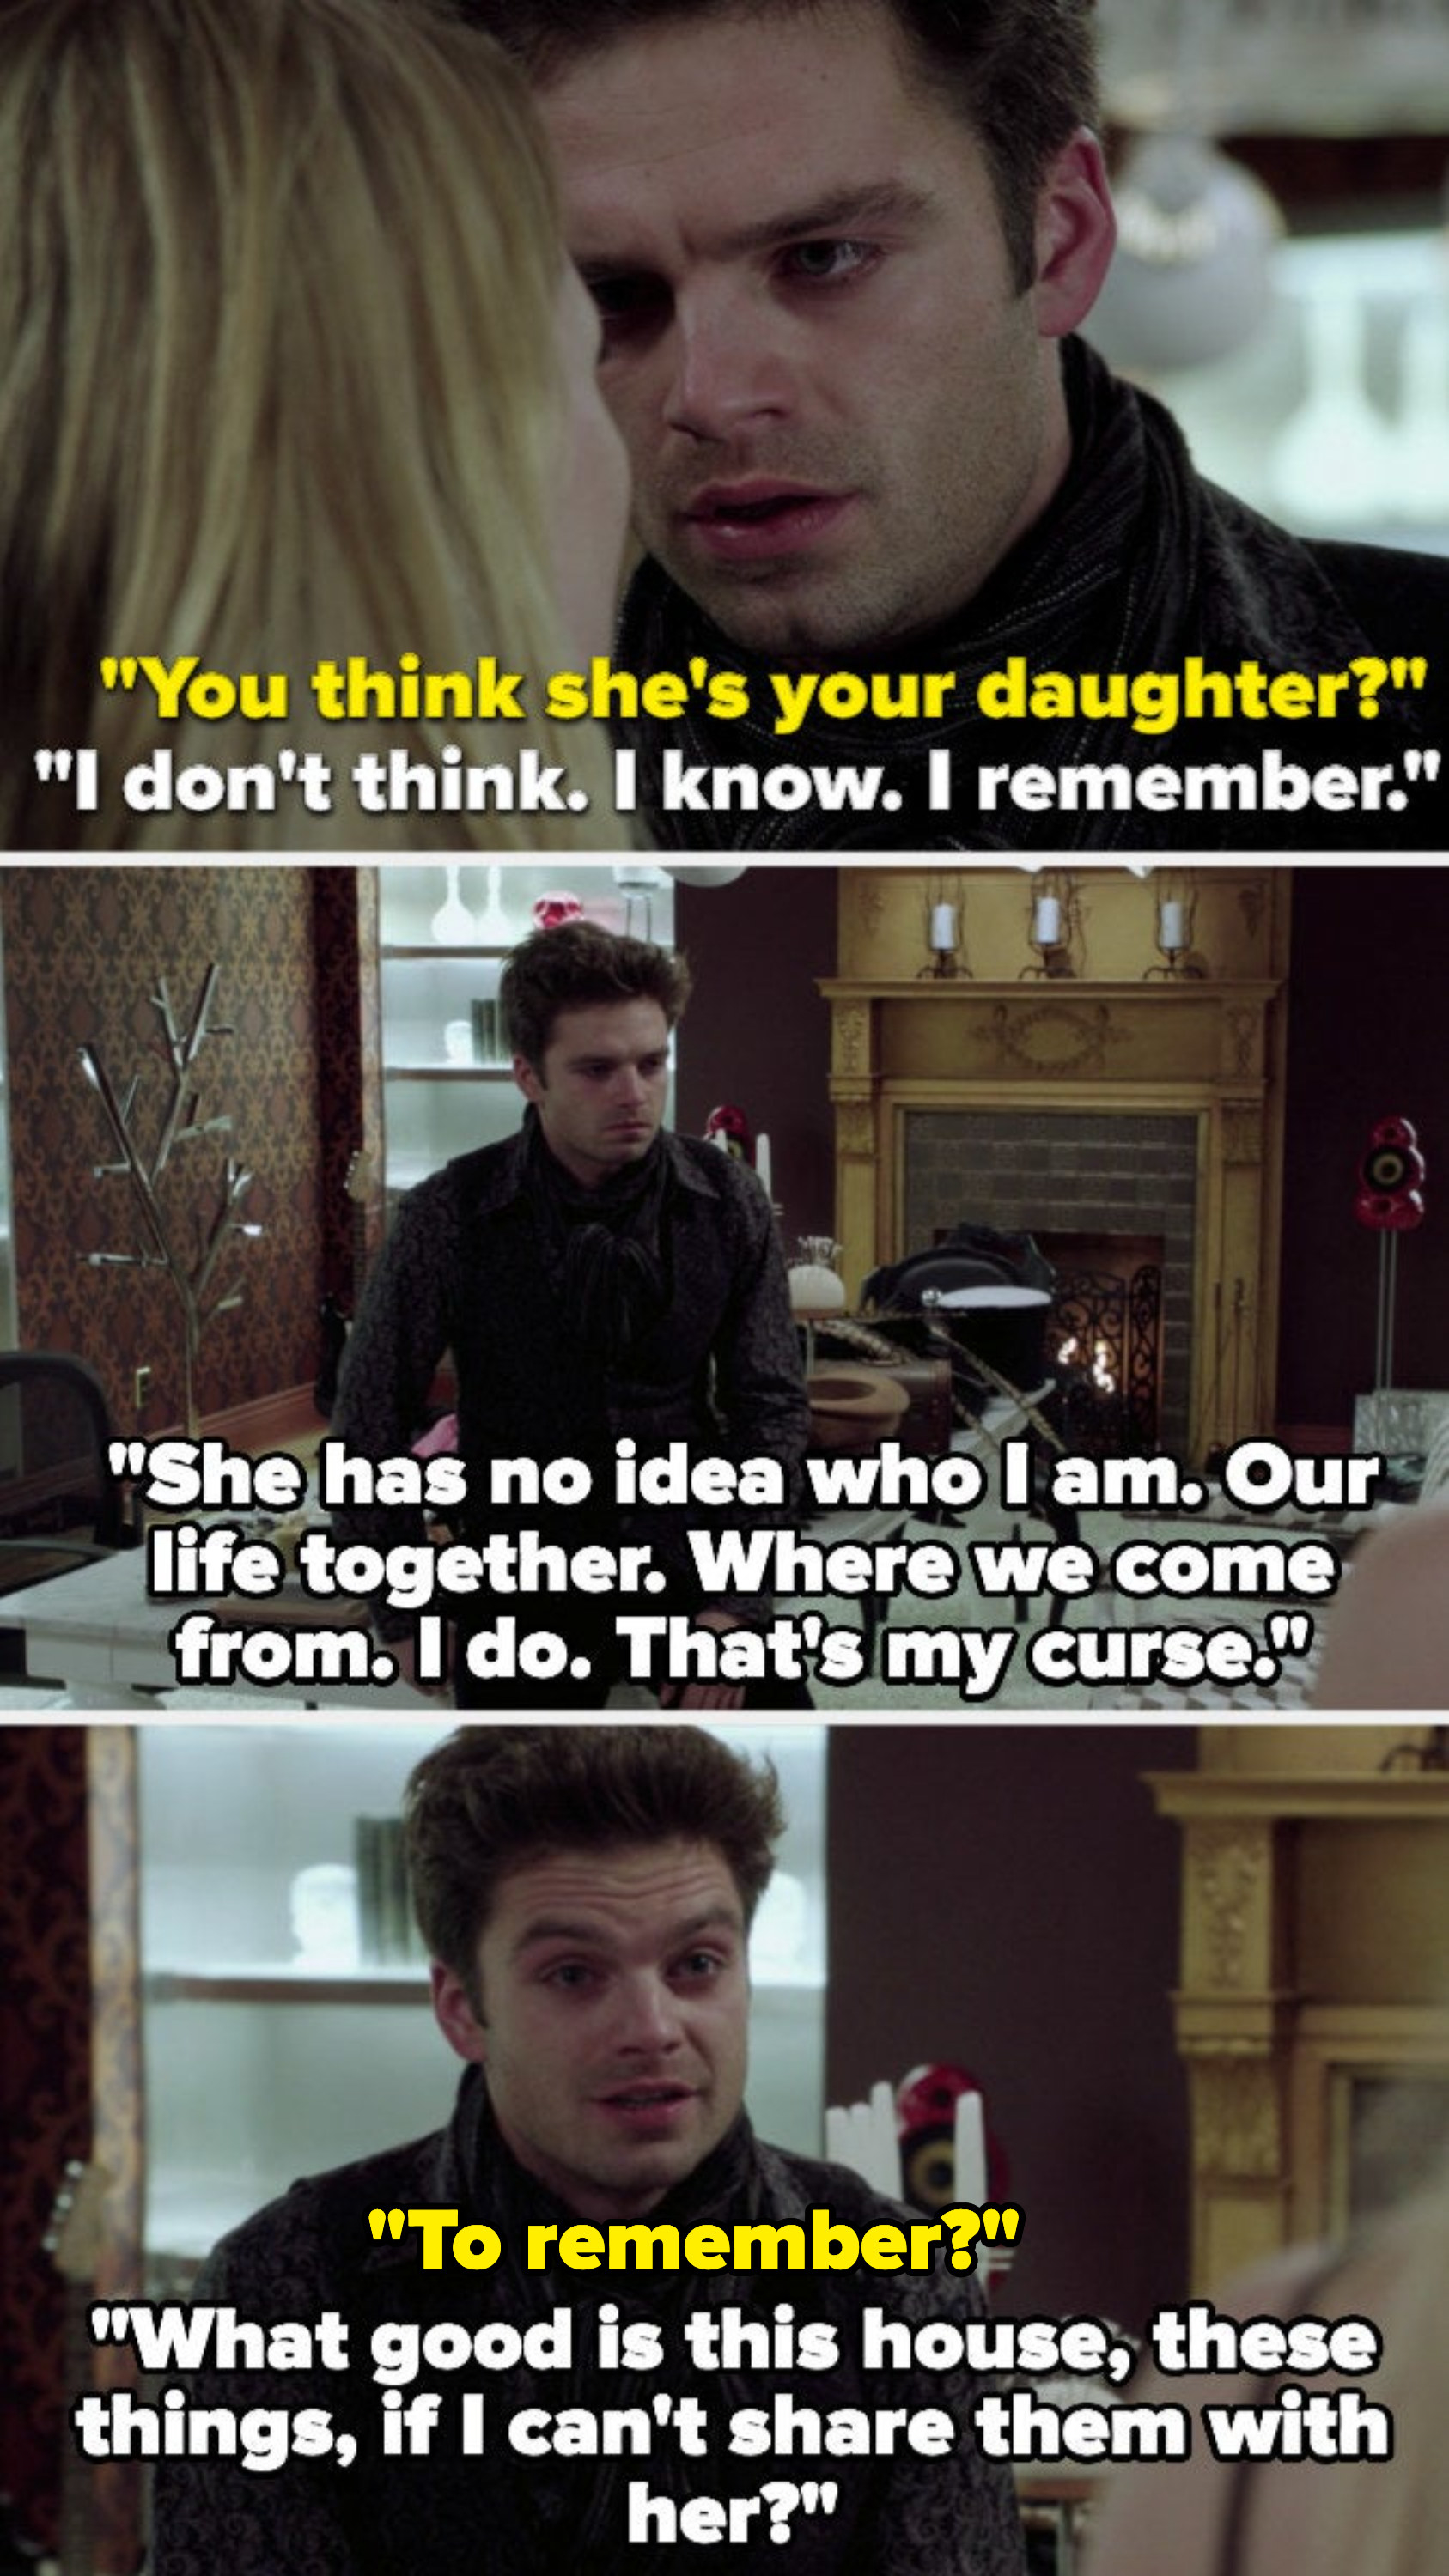 """Emma: You think she's your daughter? Mad Hatter: """"I don't think, I know. I remember. She has no idea who I am. Our life together. Where we come from. I do. That's my curse. What good is this house, these things, if I can't share them with her?"""""""